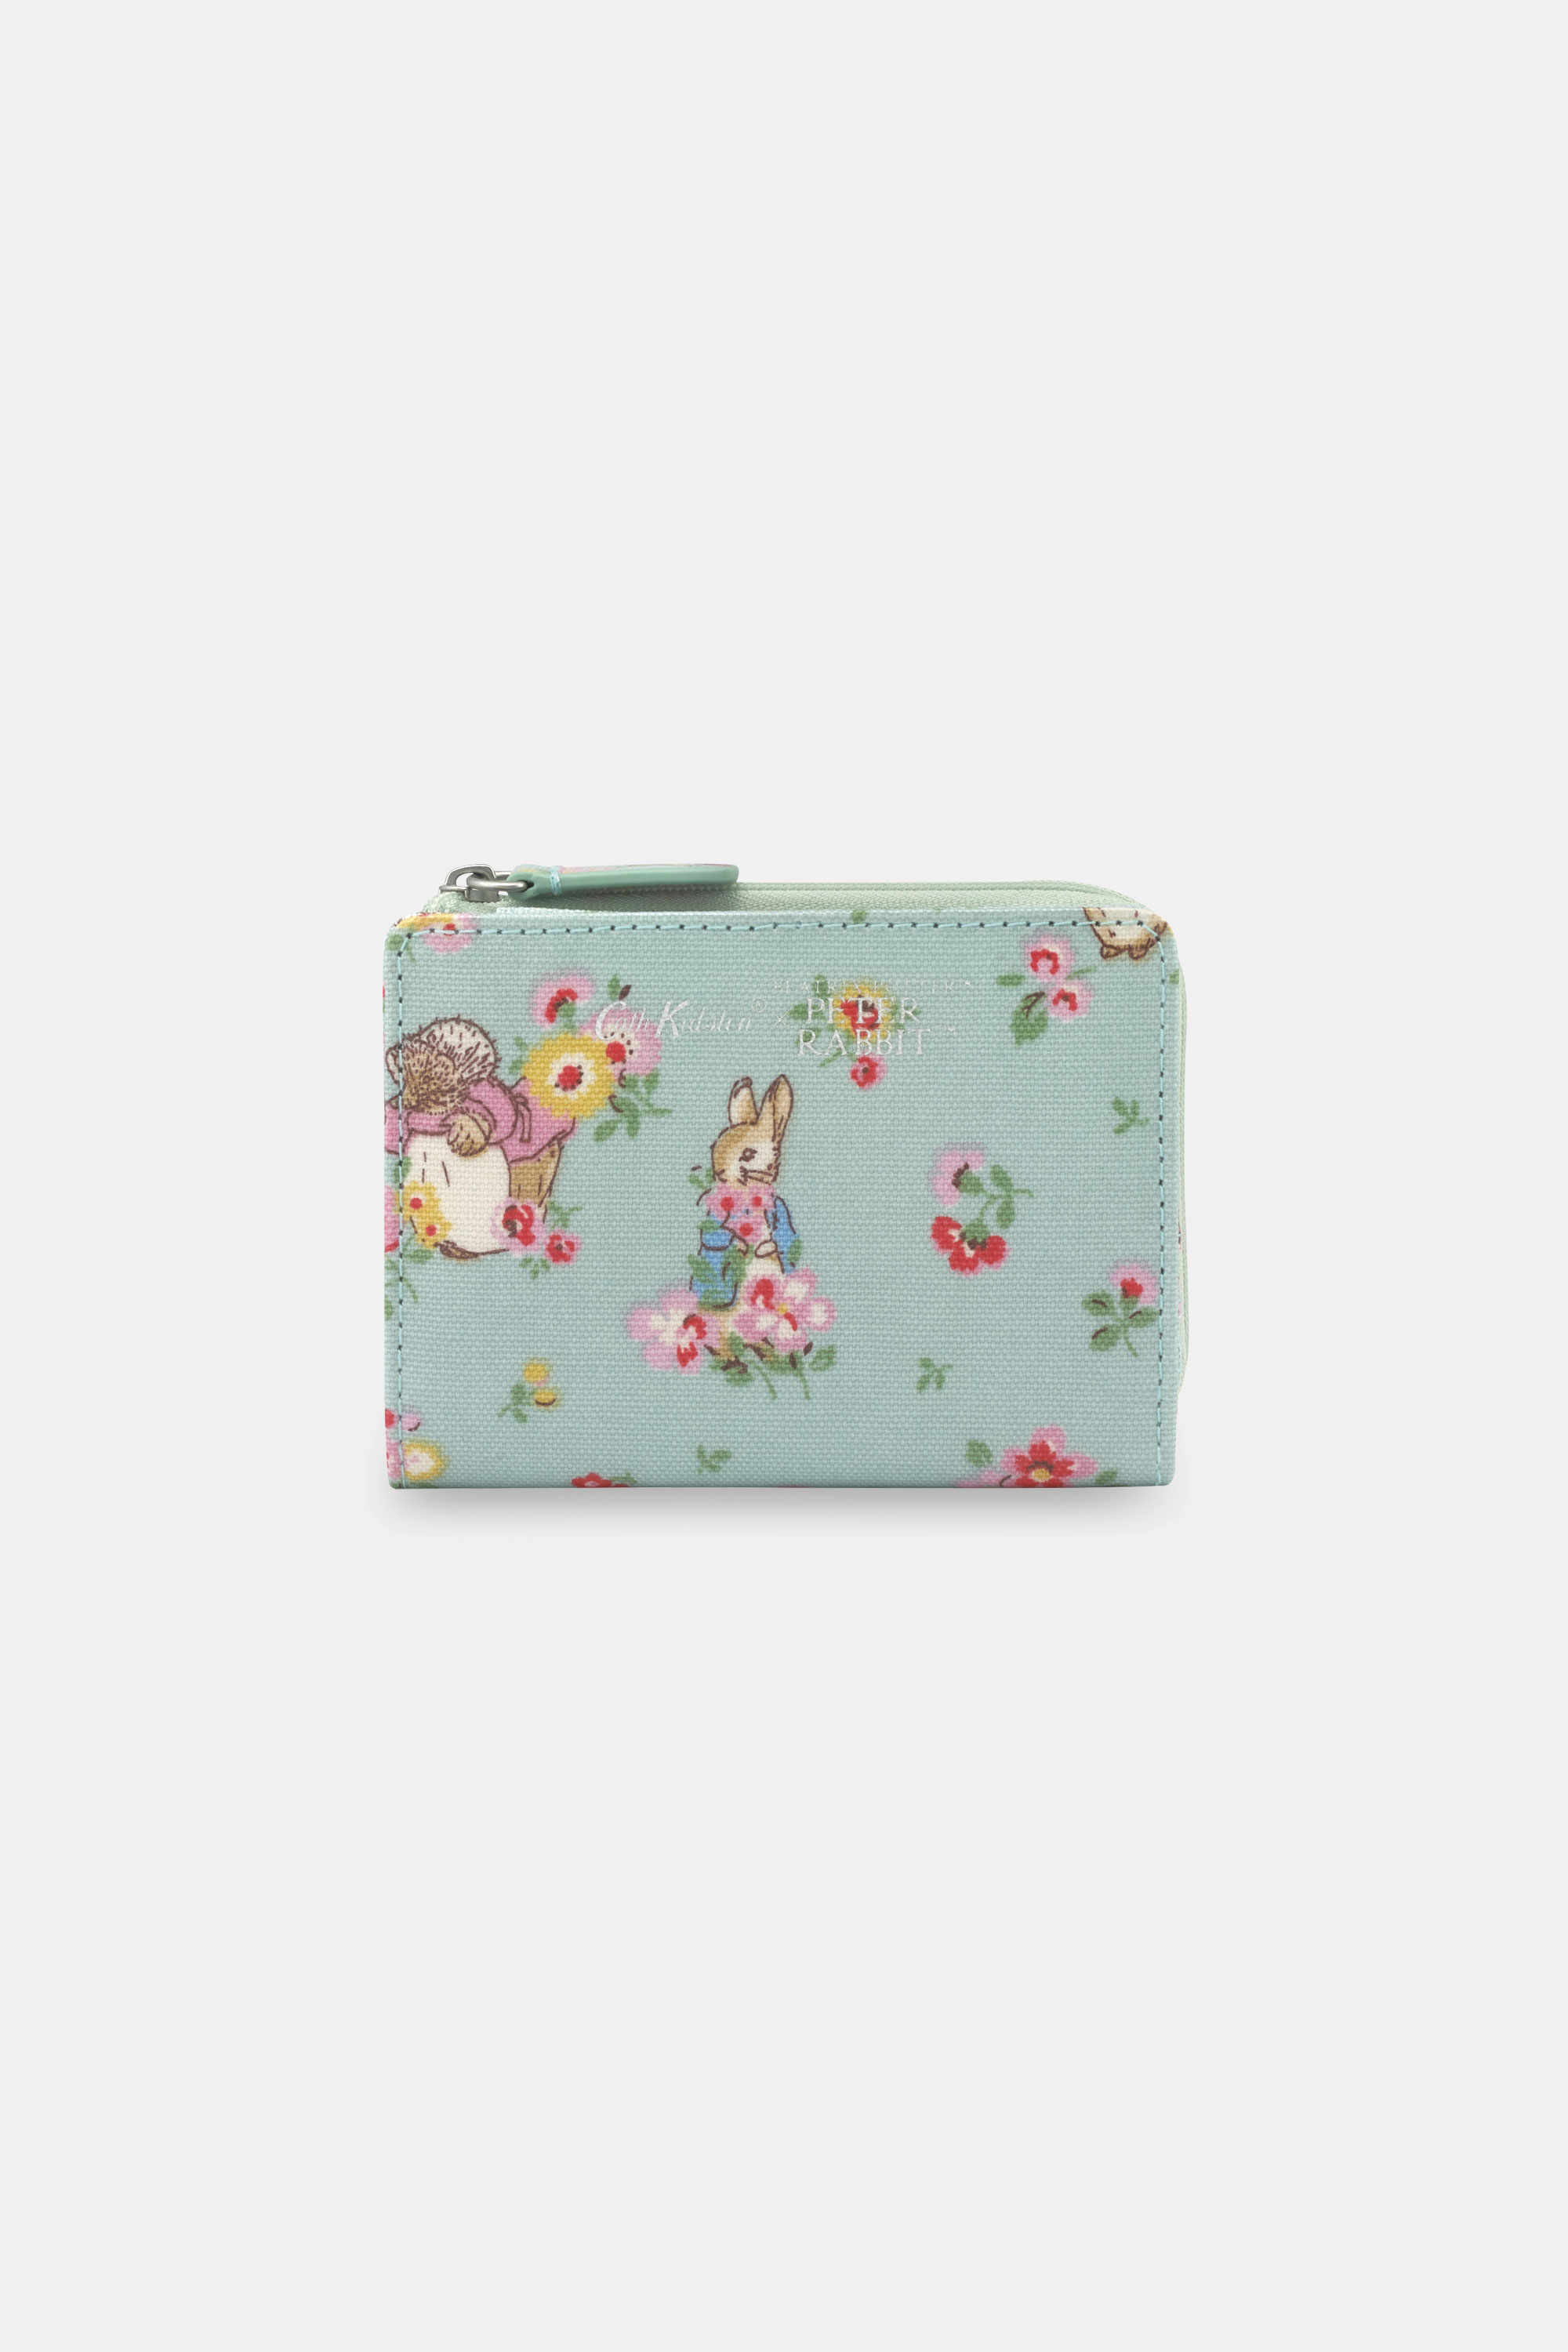 Cath Kidston Peter Rabbit Ditsy Purse in Mint